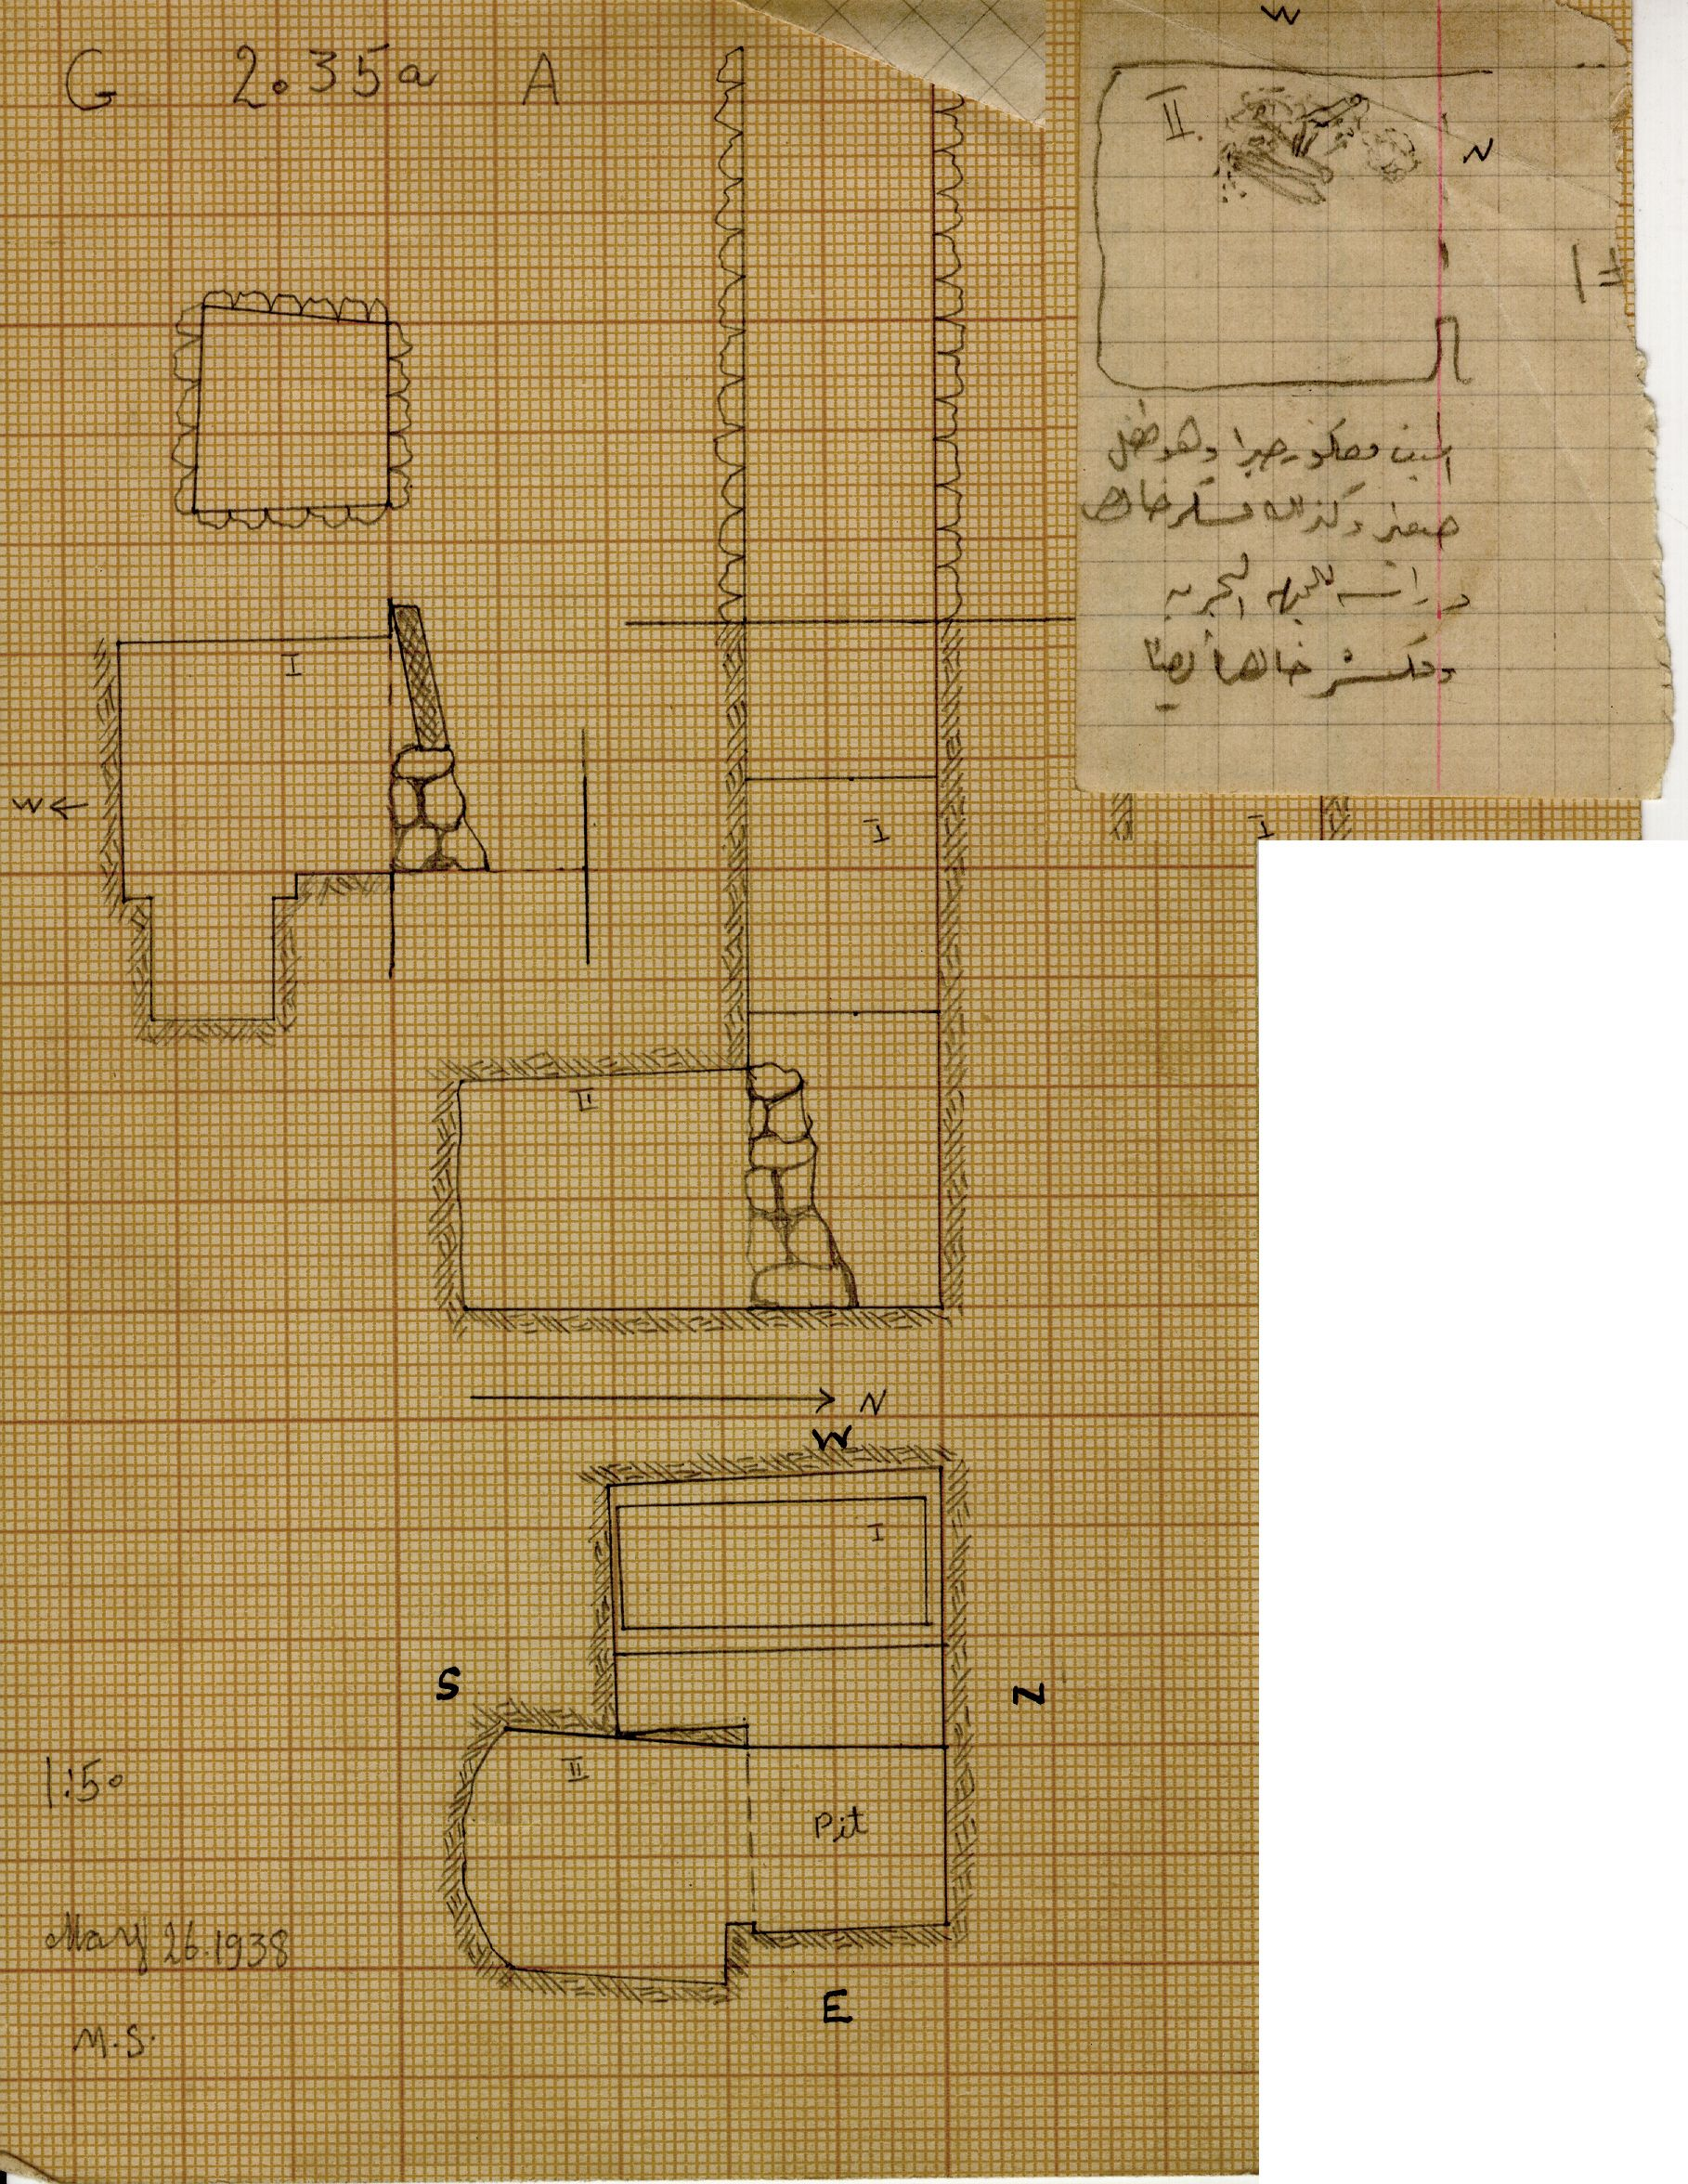 Maps and plans: G 2035a, Shaft A